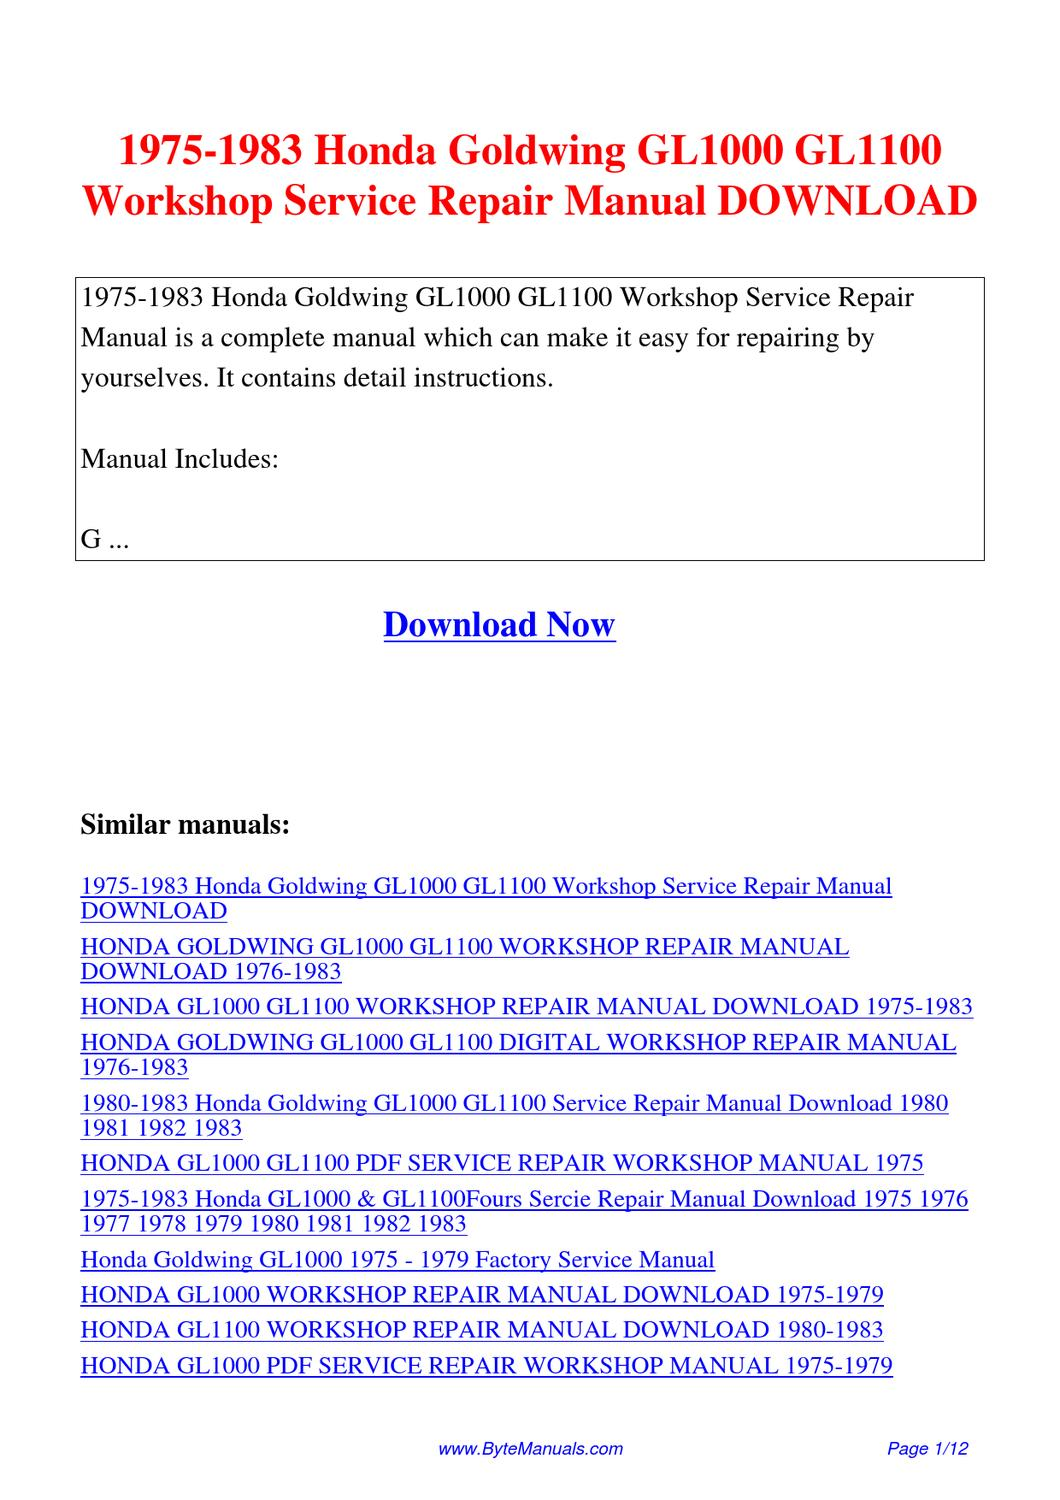 honda goldwing gl1100 service manual pdf